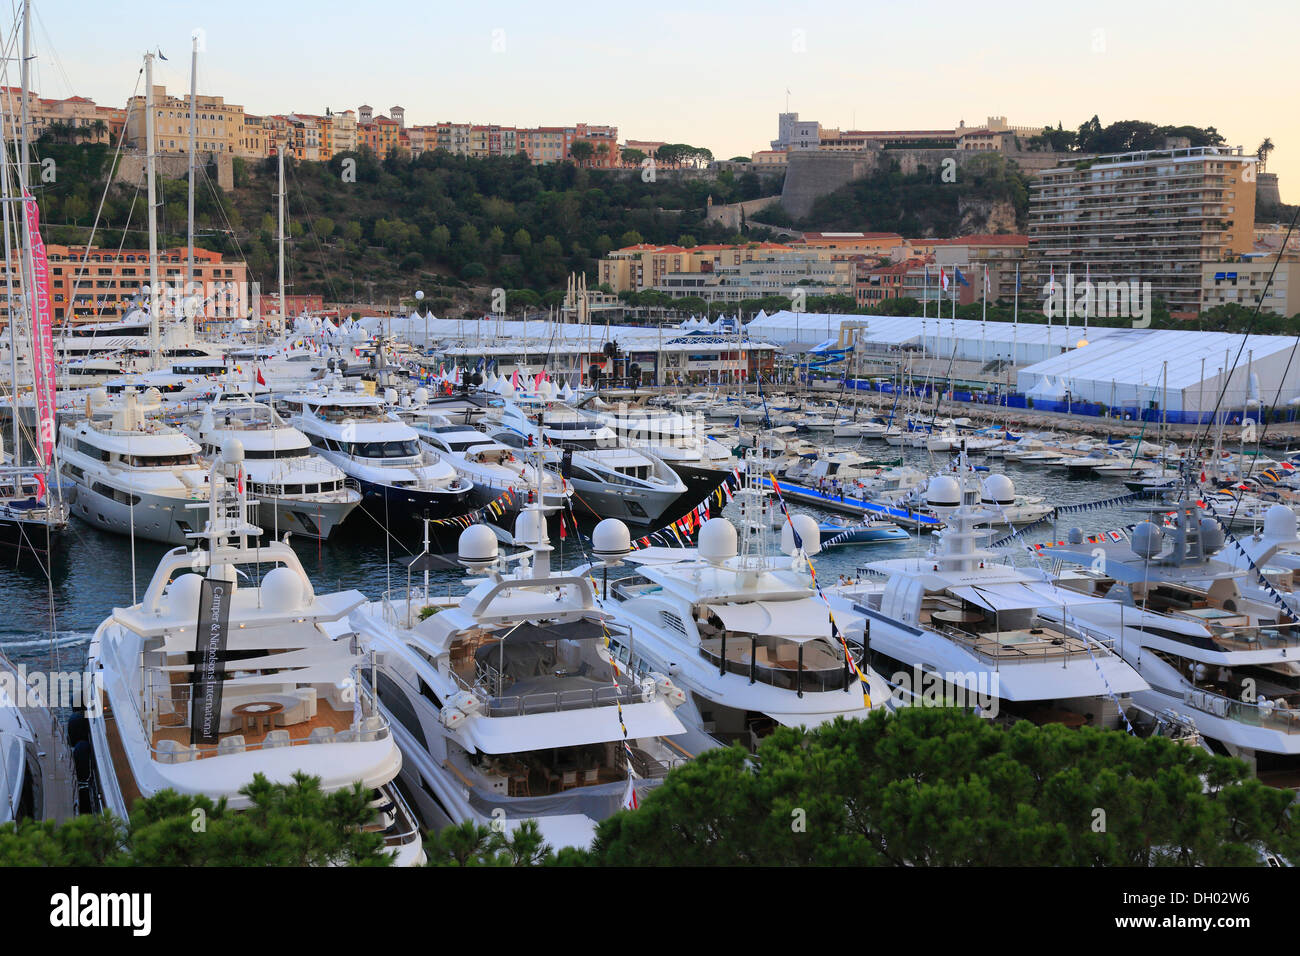 Monaco Yacht Show 2012, Port Hercule in the evening, Prince's Palace at the rear, Principality of Monaco, Cote d'Azur Stock Photo